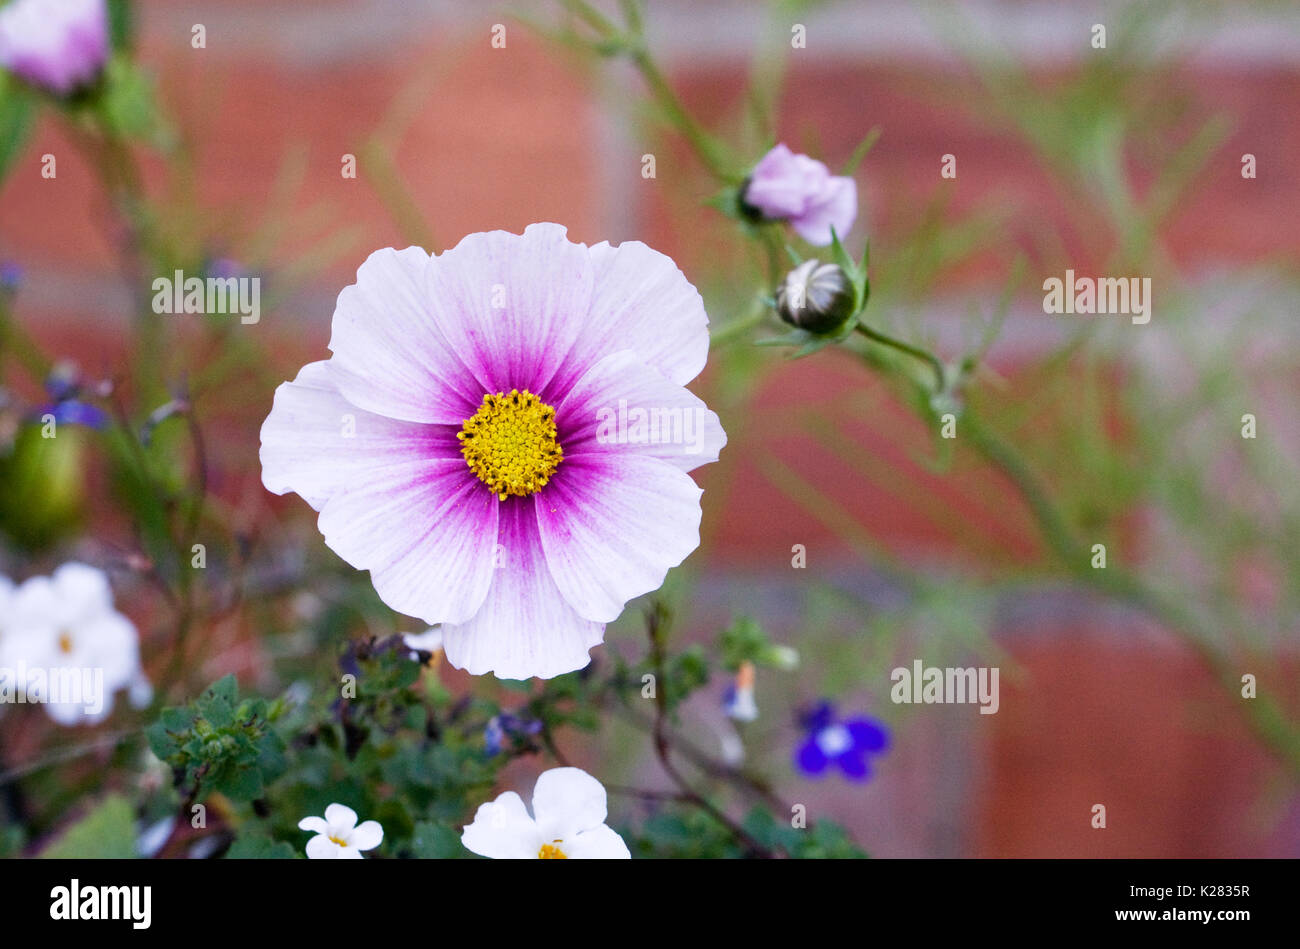 Cosmos bipinnatus 'Daydream' flowers against a red brick wall. - Stock Image